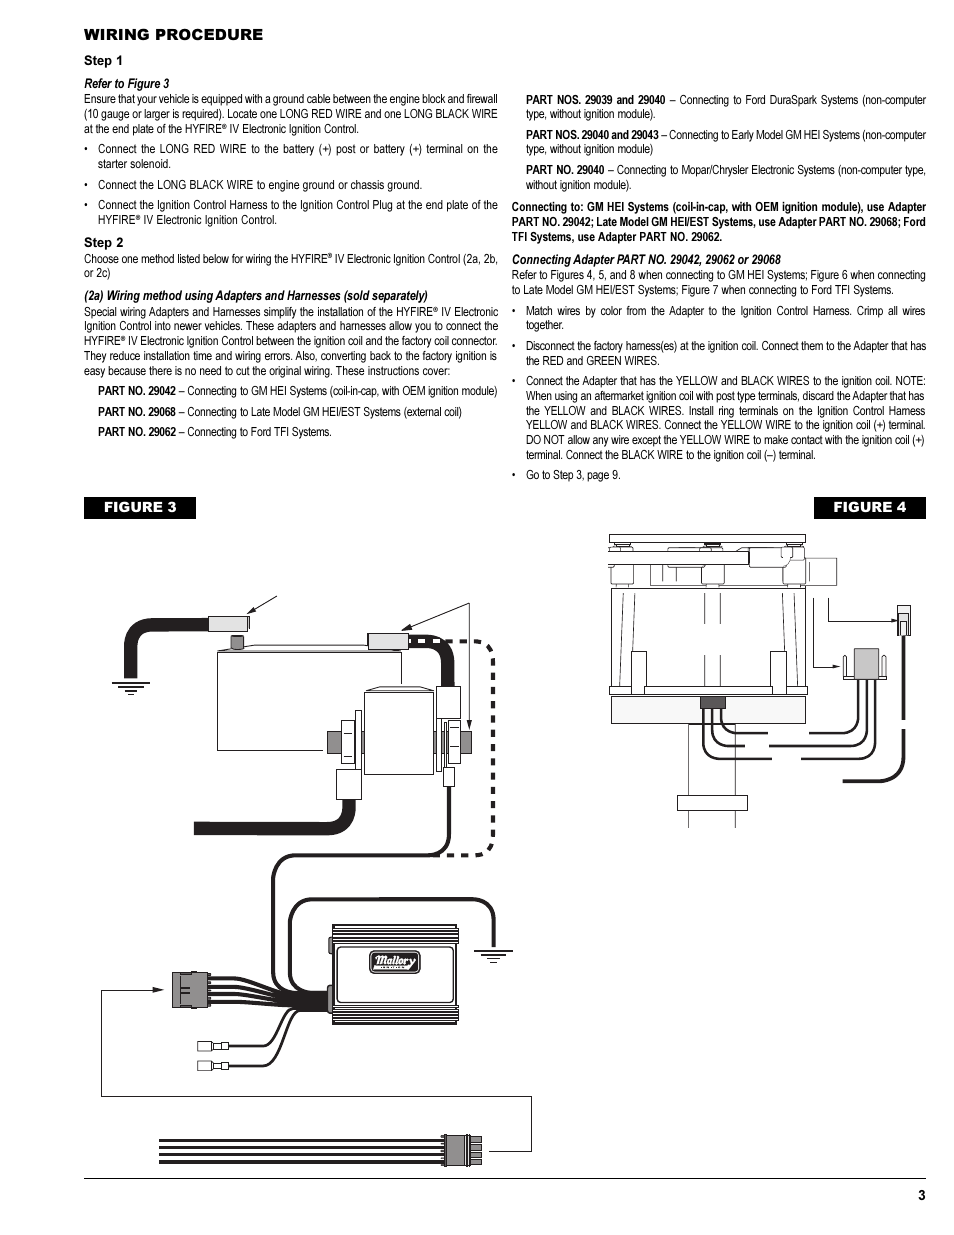 Wiring procedure, Figure 4, 12v/battery (+) | Mallory Ignition ... on mallory ignition troubleshooting, mallory marine ignition wiring, mallory 6100m ignition, mallory magneto ignition wiring diagram, ford 8n ignition system diagrams, mallory 8548201 distributor wiring diagram, mallory ignition wiring diagram 85, mallory ct pro ignition system, mallory ignition module, mallory ignition wiring diagram digital motorcycle, mallory ignition distributor, mallory ignition wiring diagram 75, mallory ignition wiring diagram chevy,